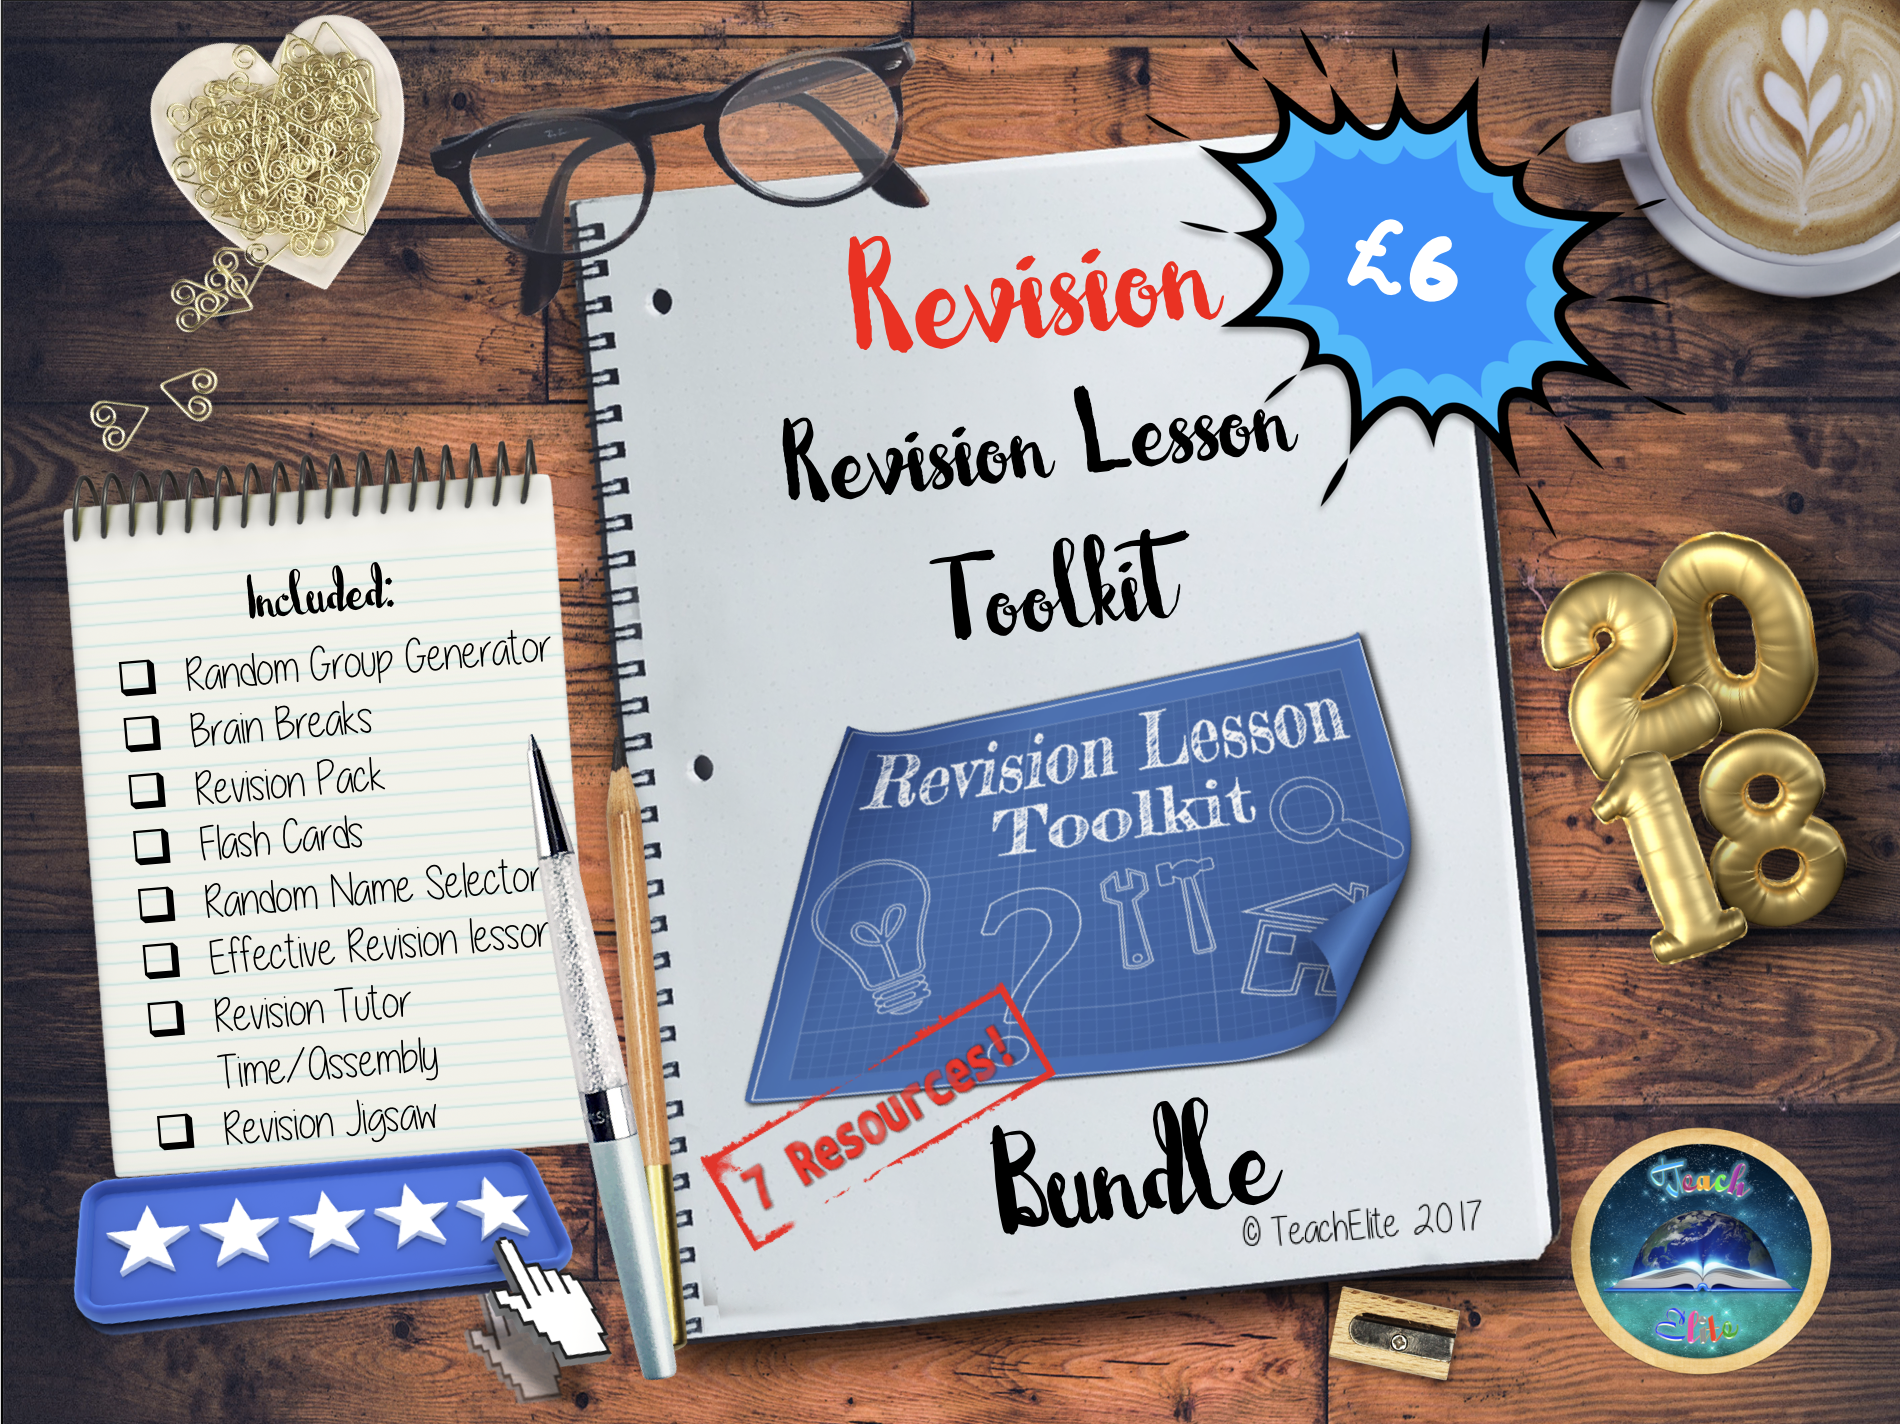 GCSE Revision: Revision lesson Toolkit